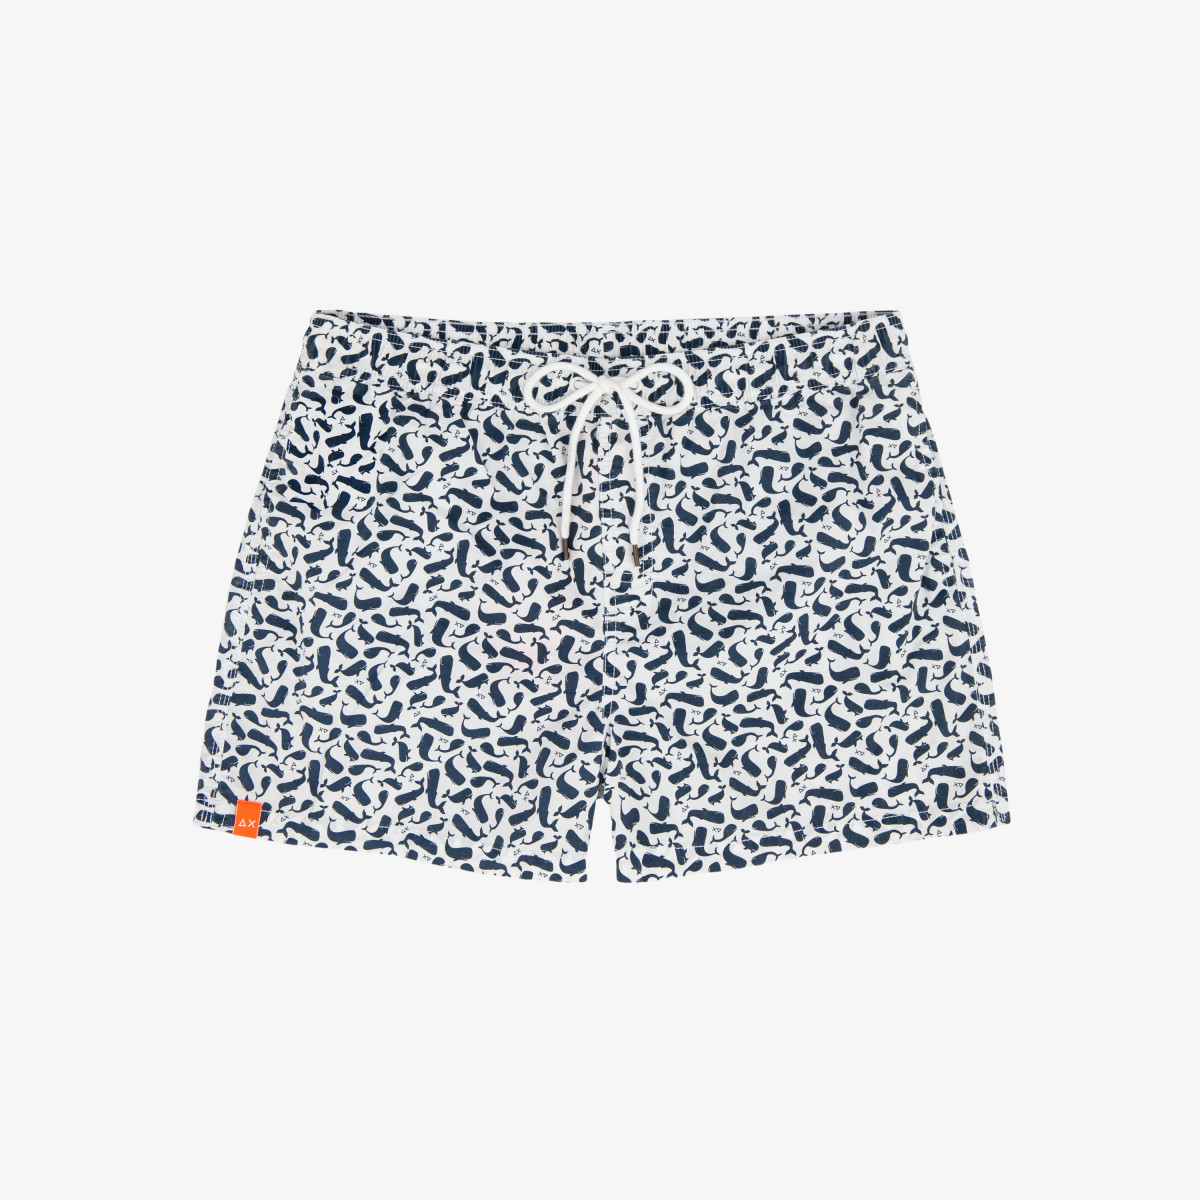 SWIM PANT MICRO PRINT BIANCO/NAVY BLUE